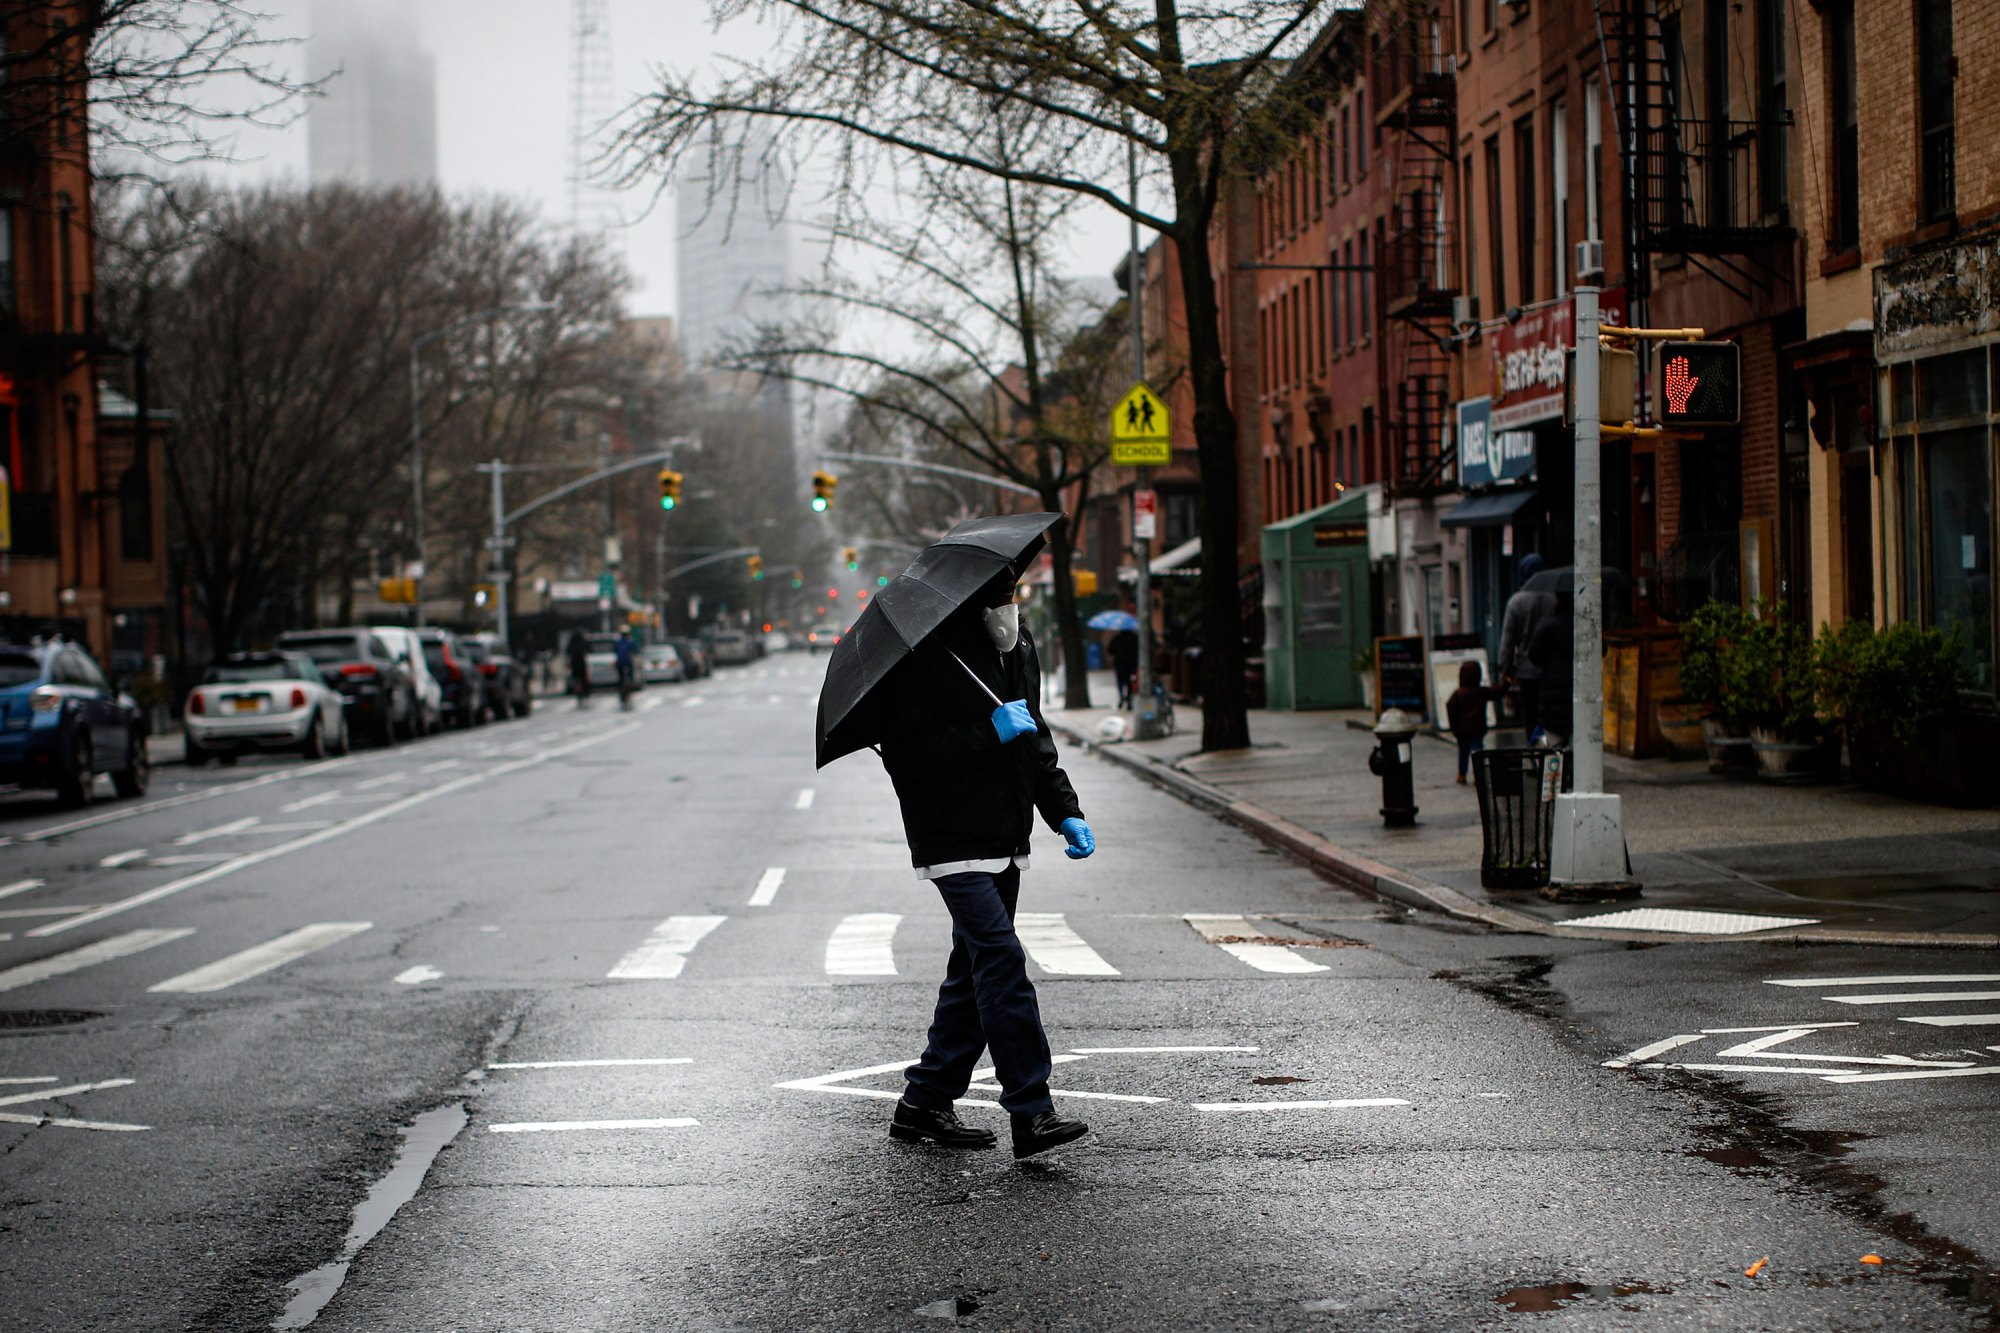 A pedestrian wearing a protective mask and protective gloves walks across an empty Dekalb Avenue, Sunday, March 29, 2020, in Brooklyn borough of New York. The new coronavirus causes mild or moderate symptoms for most people, but for some, especially older adults and people with existing health problems, it can cause more severe illness or death. (AP Photo/John Minchillo)